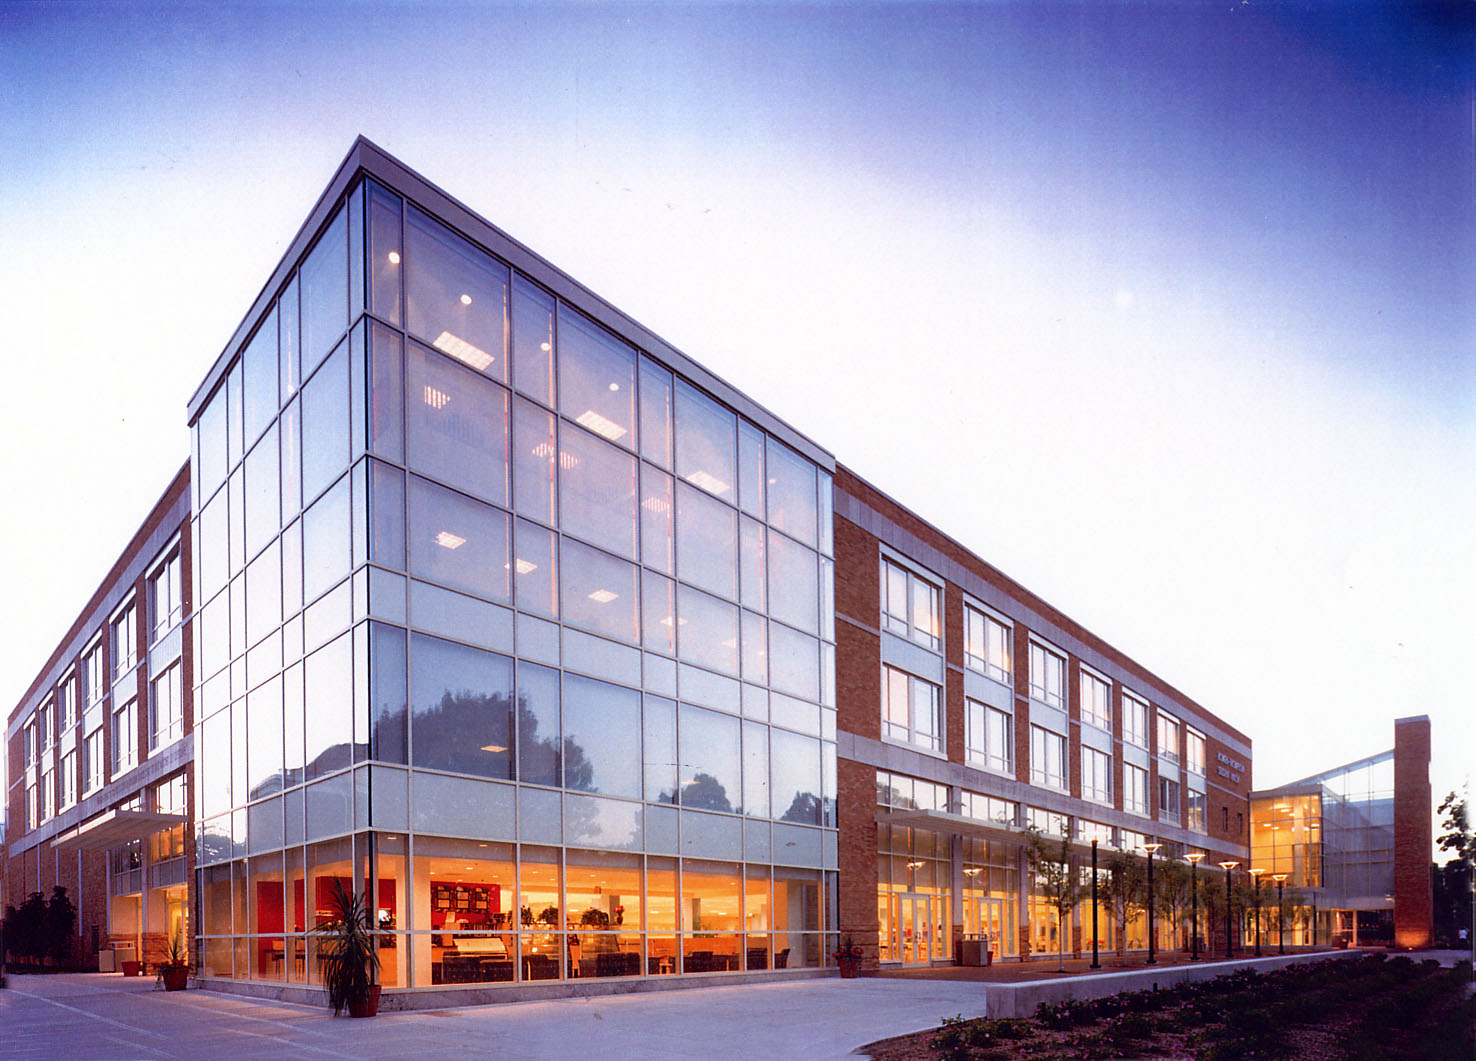 2002_Bowen-ThompsonStudent Union_Bowling Green State University.jpg